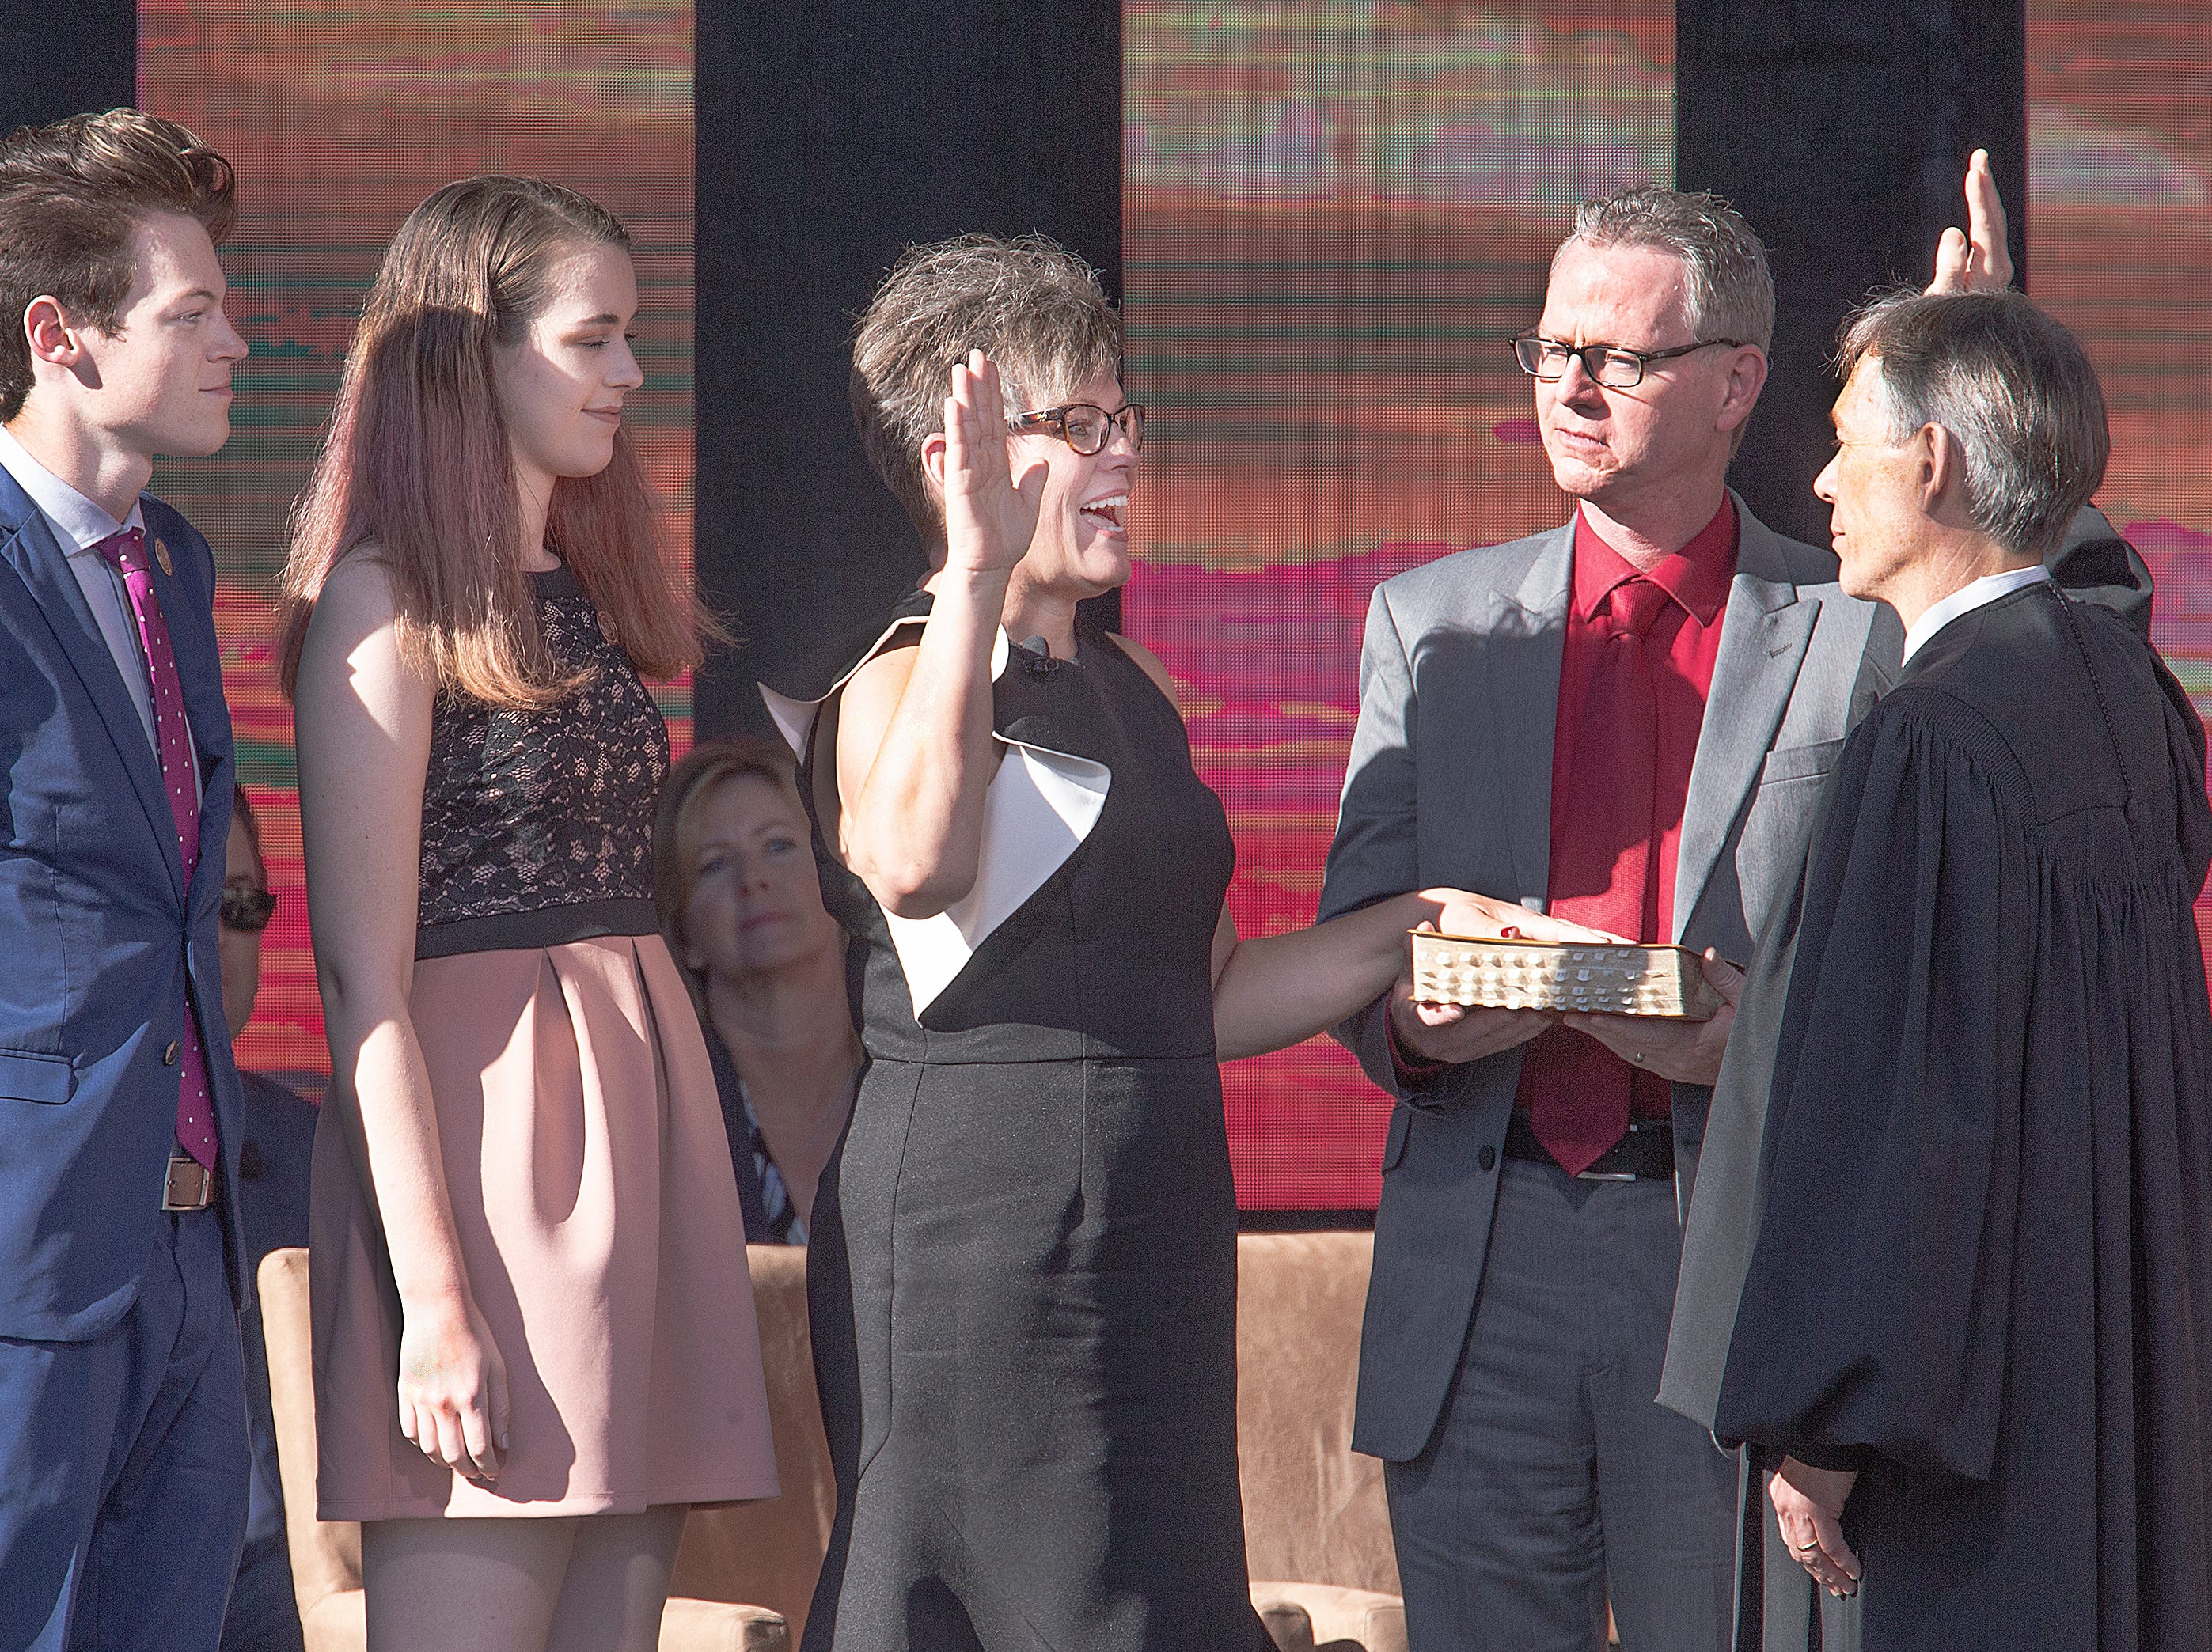 Katie Hobbs is sworn in as secretary of state by Arizona Supreme Court Chief Justice Scott Bales at the Arizona Capitol in Phoenix at the 2019 State of Arizona Inauguration ceremony on Jan. 7, 2019.  Gov. Doug Ducey , Hobbs, Attorney General Mark Brnovich, State Treasurer Kimberly Yee, Superintendent of Public Instruction Kathy Hoffman and State Mine Inspector Joe Hart were all sworn i in to office during the ceremony.